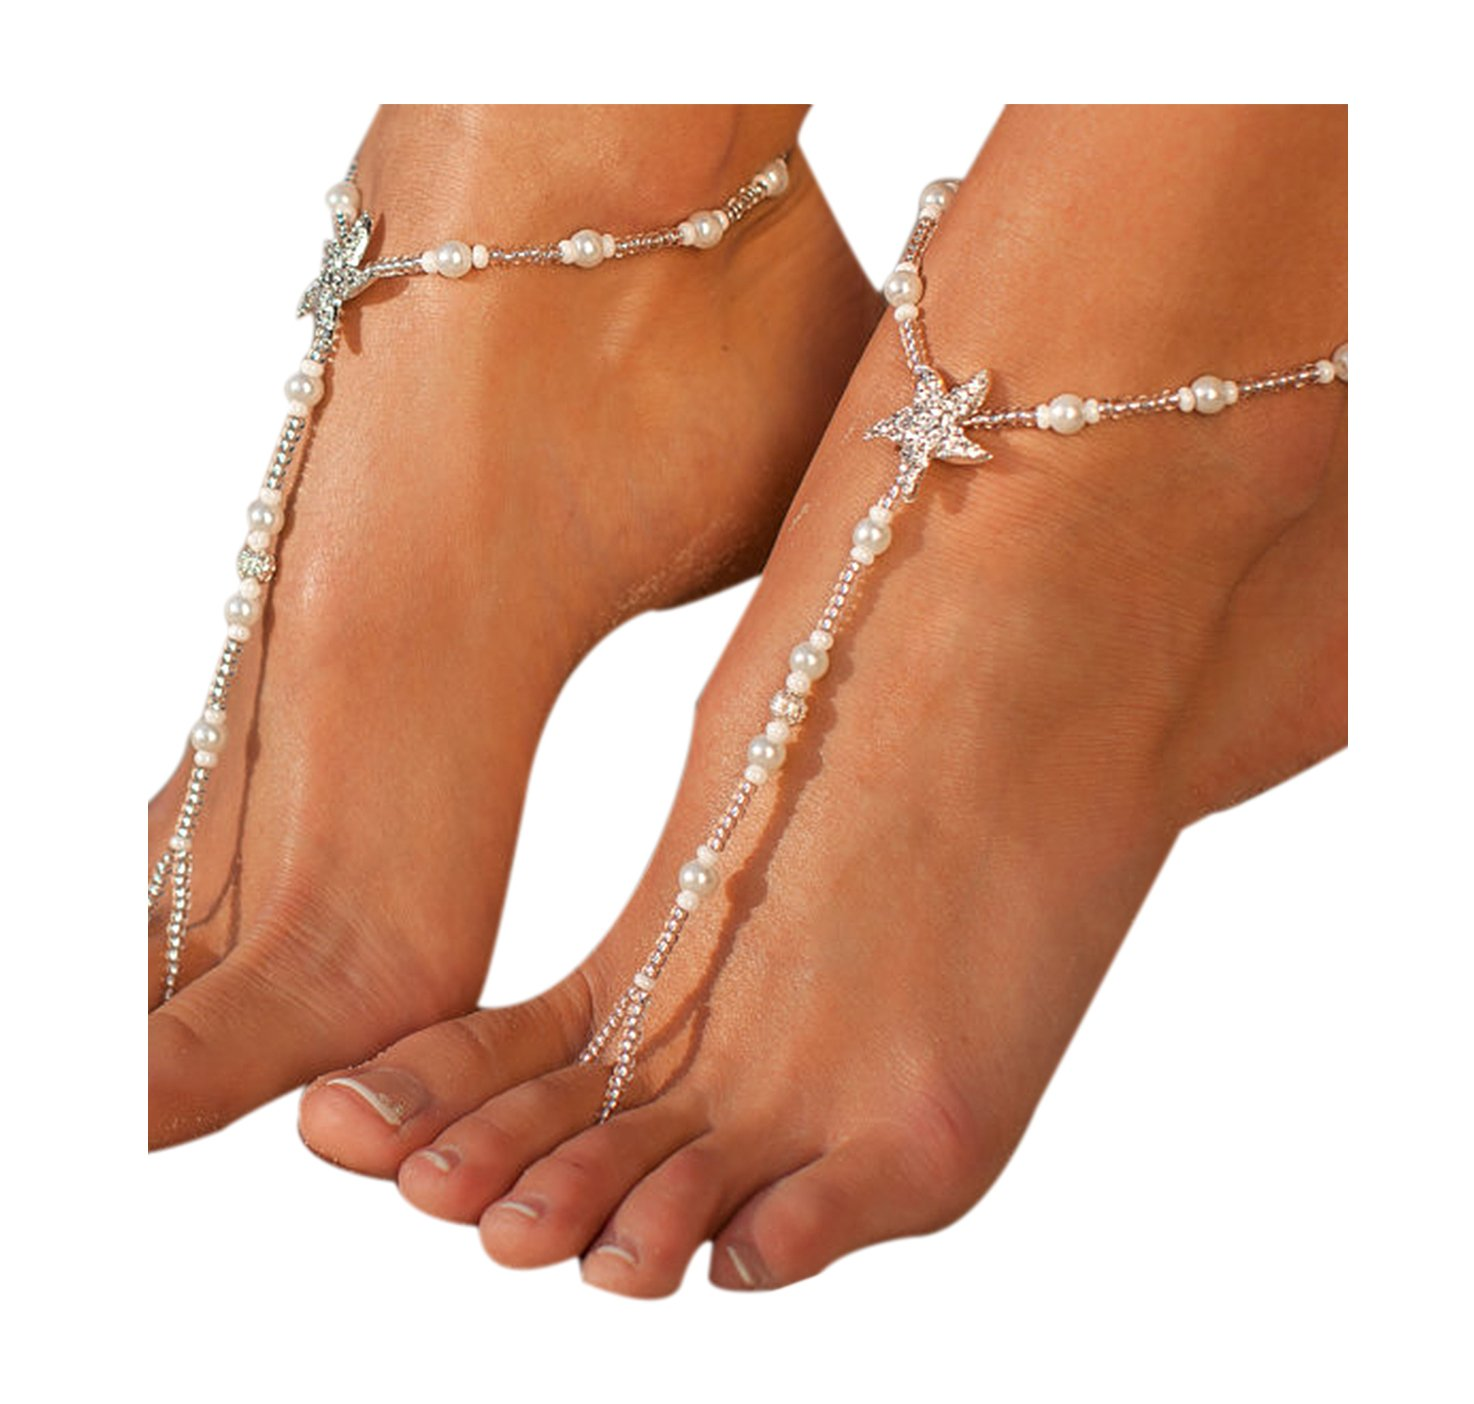 L'vow Pearl Ankle Chain Dec with Starfish Beach Barefoot Sandal Anklet Bracelet L' vow bracelet-10